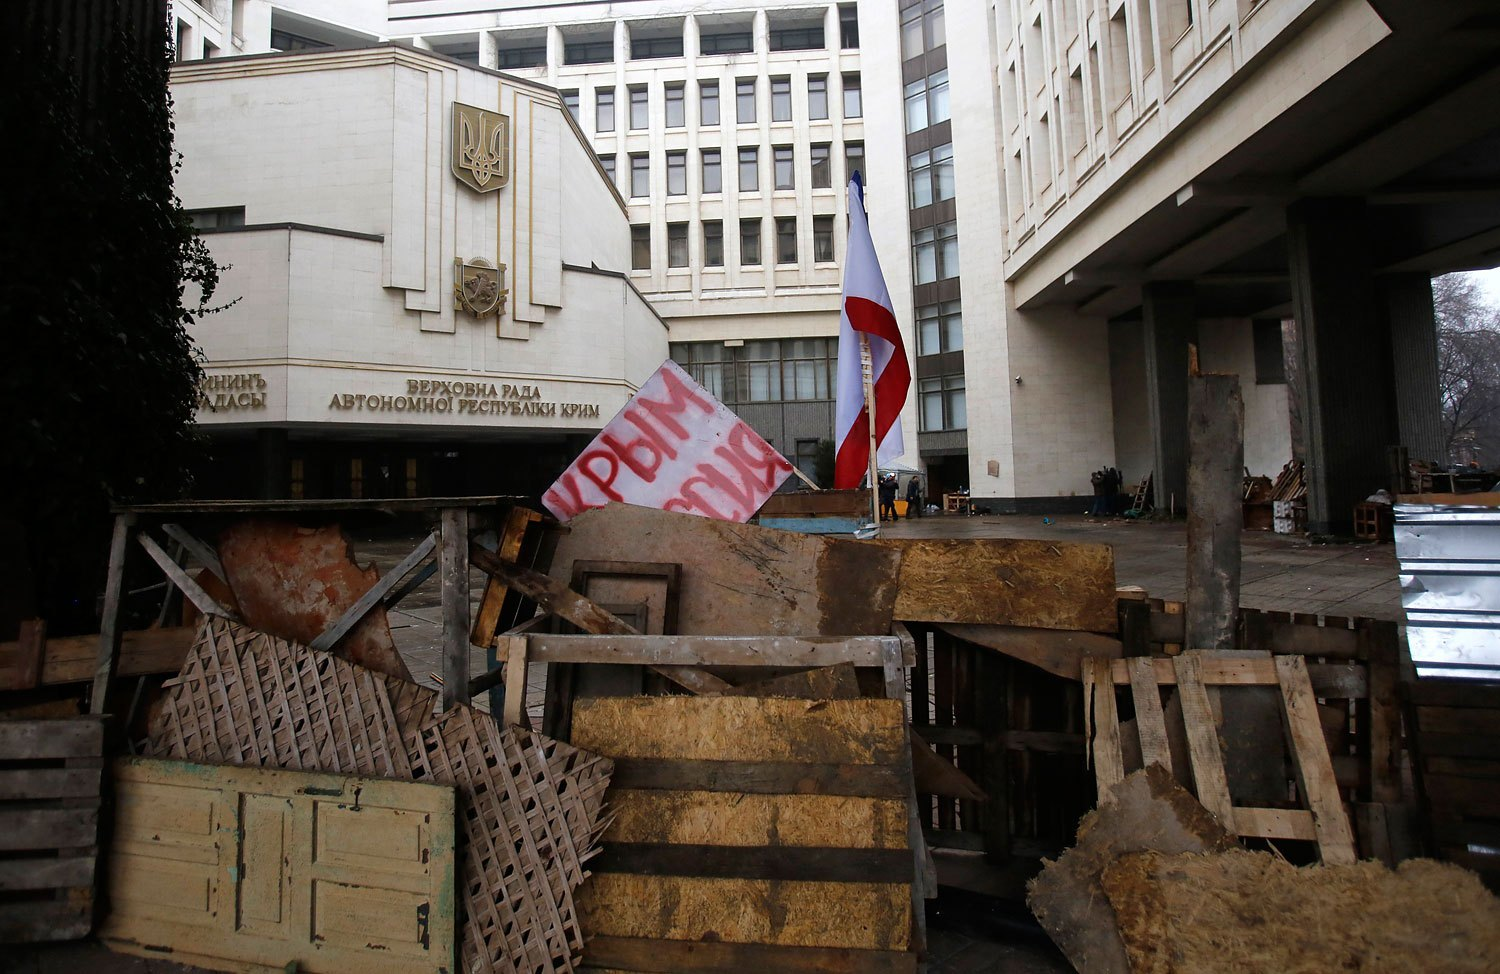 """Barricades block the entrance to government buildings in Simferopol, Crimea, with a banner that reads """"Crimea Russia,"""" Feb. 27, 2014."""